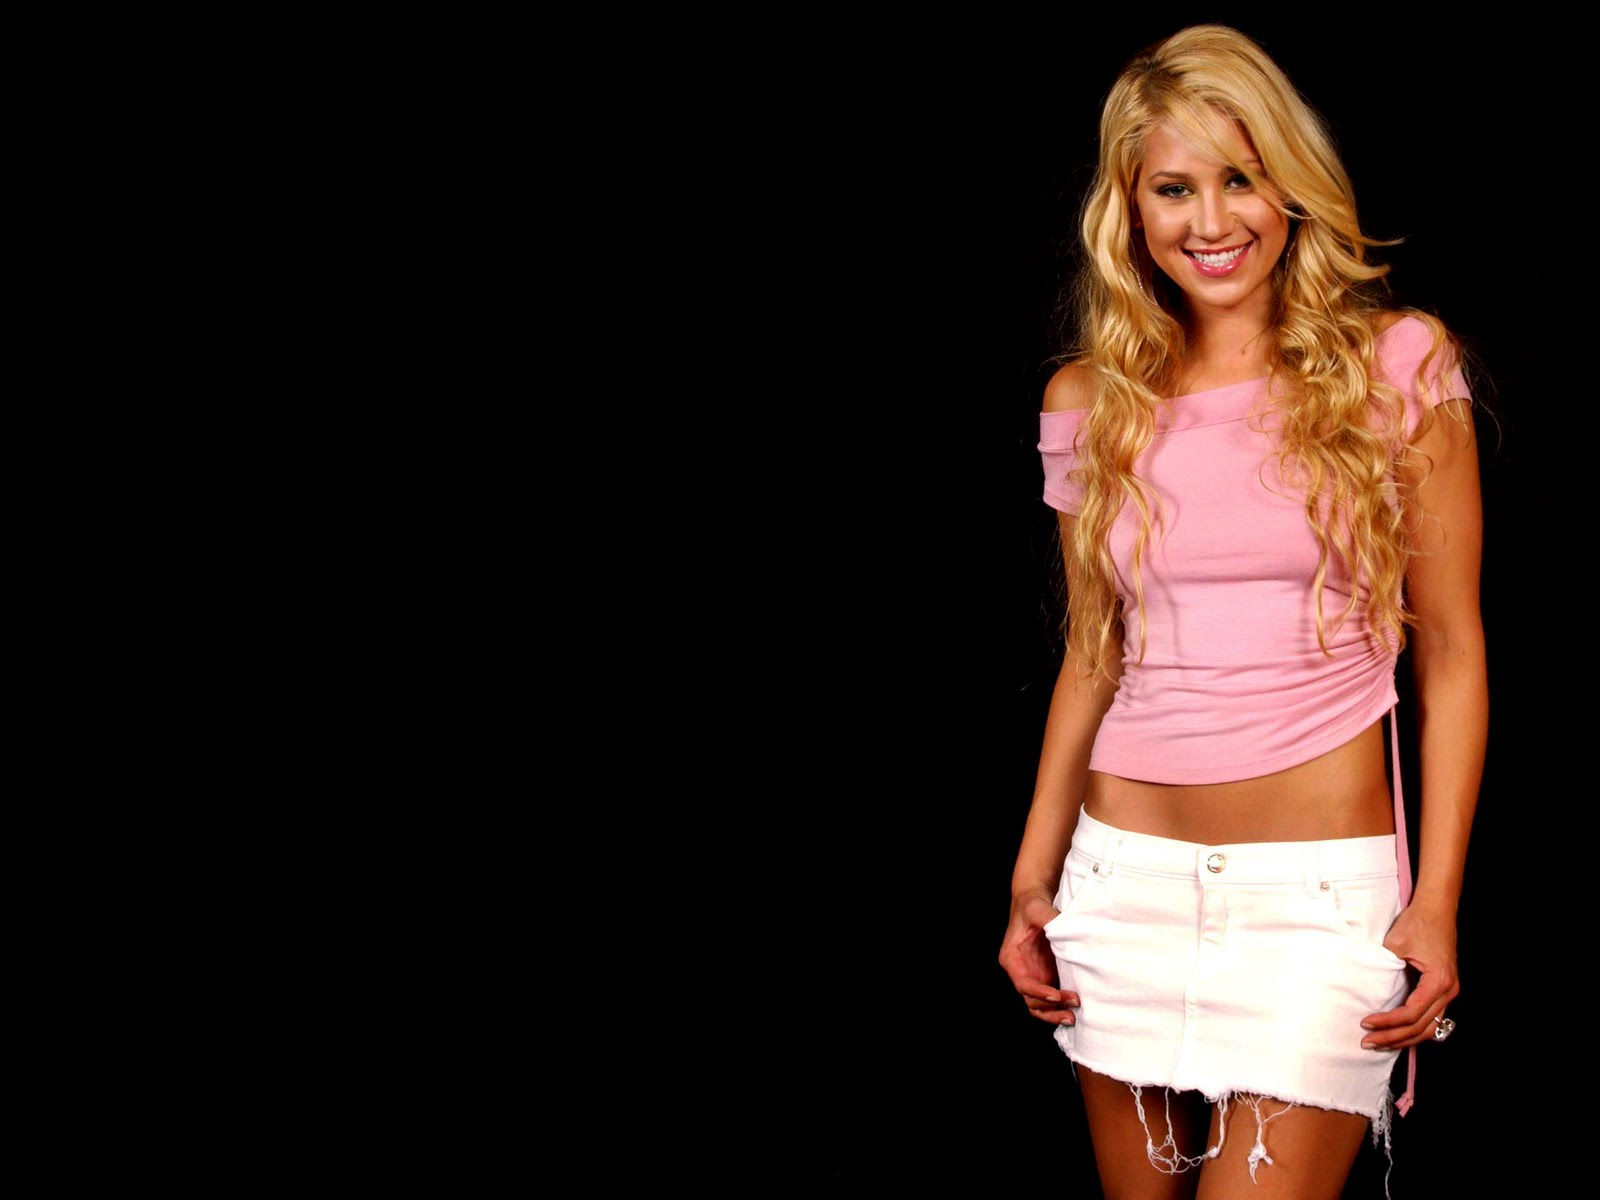 Cute Girl Wallpapers Pinterest Anna Kournikova Hot Pictures Photo Gallery Amp Wallpapers